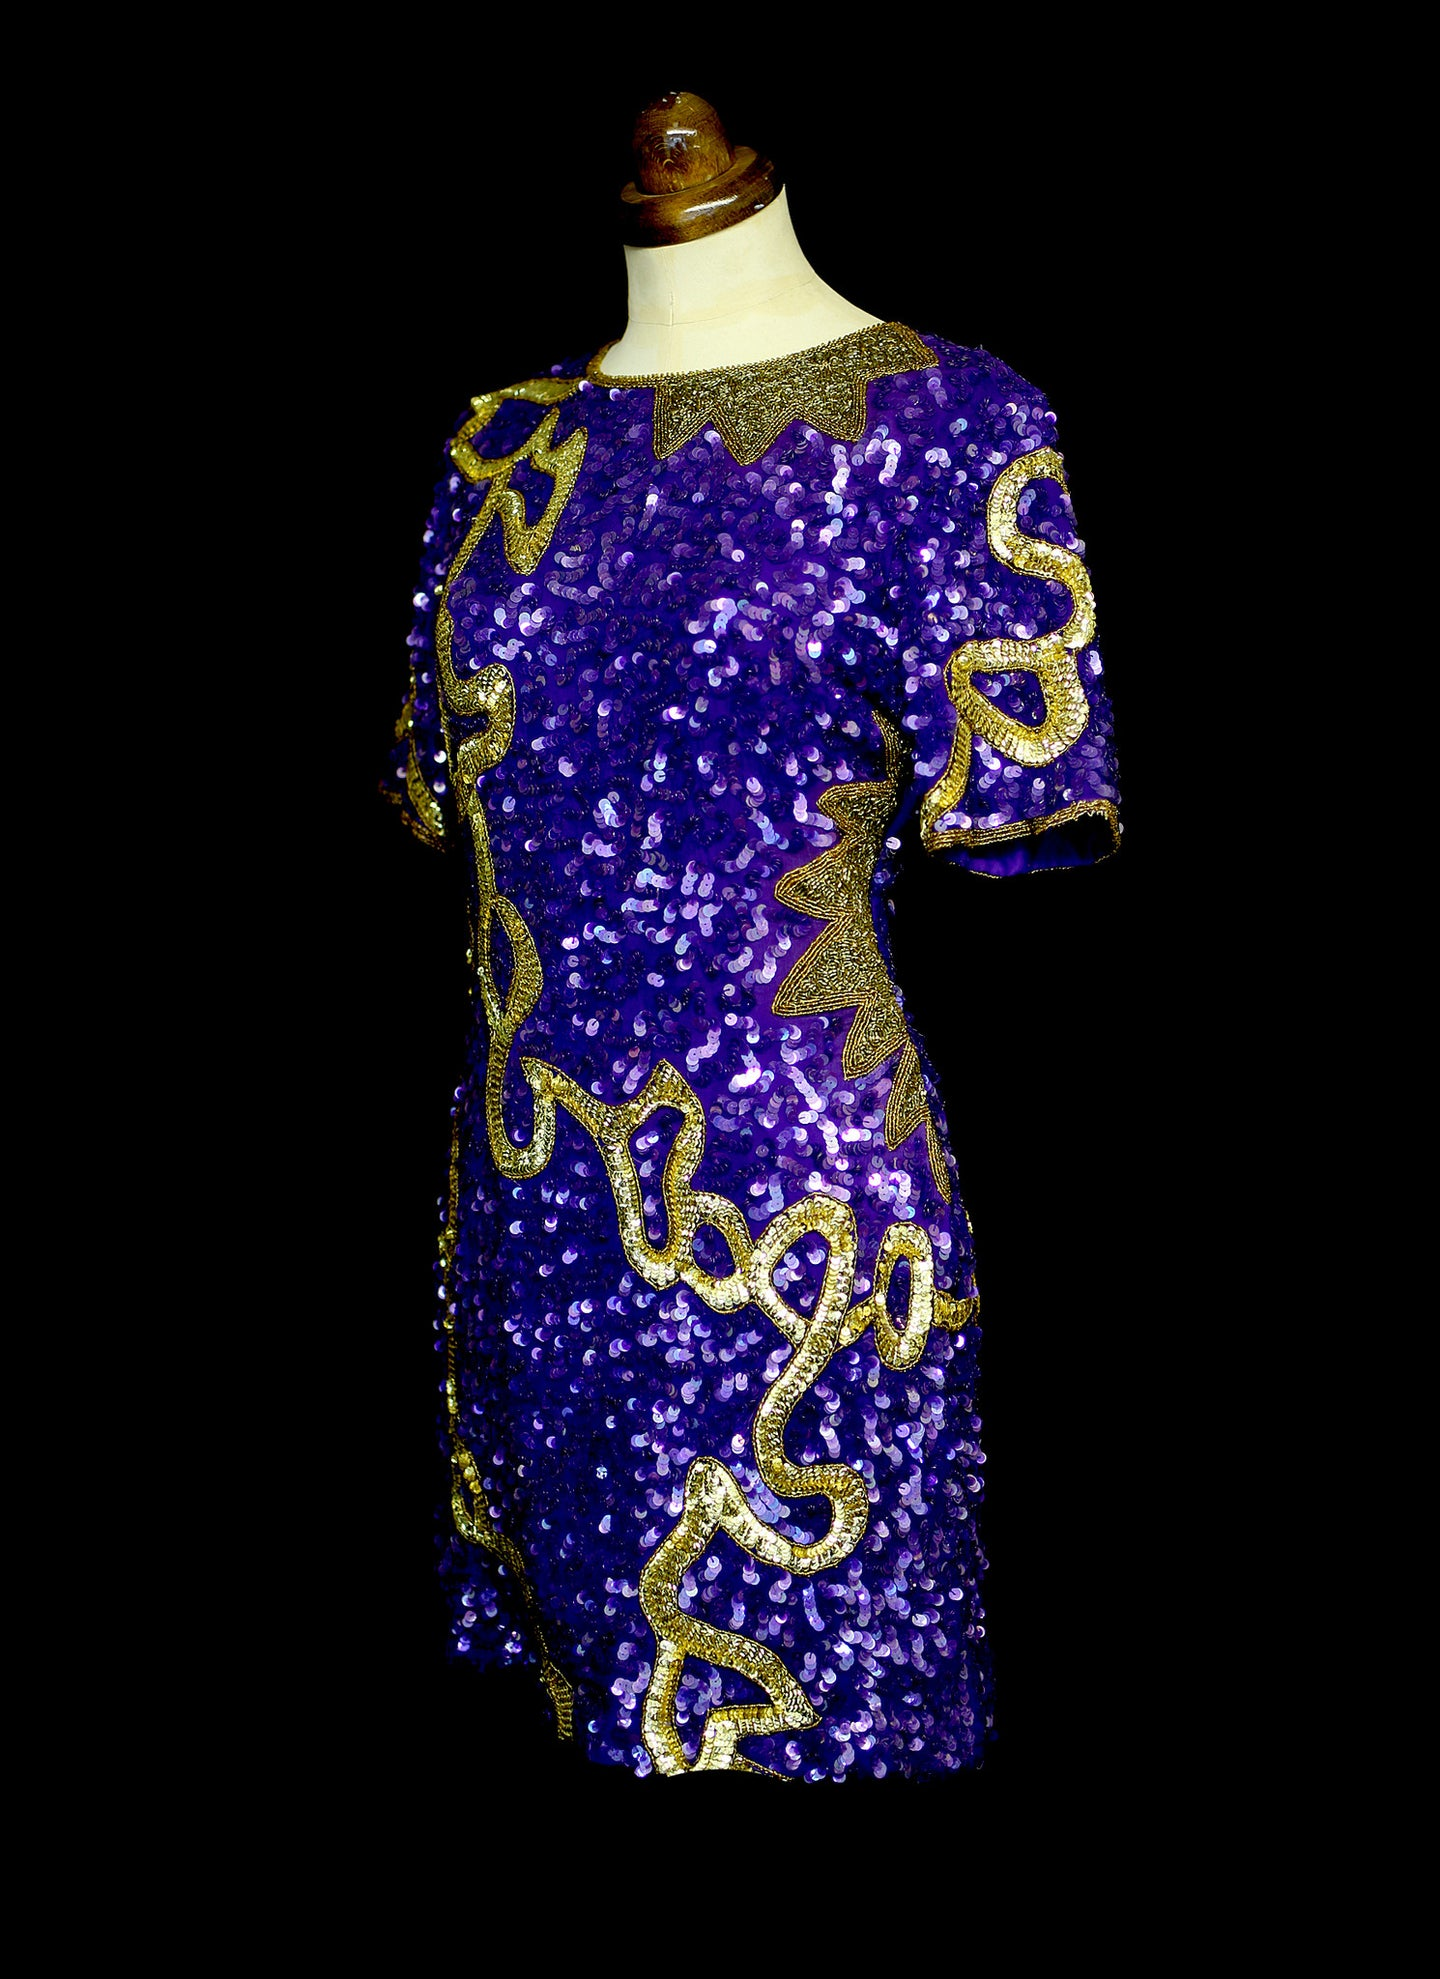 Vintage 1980s Purple Gold Sequin Mini Dress